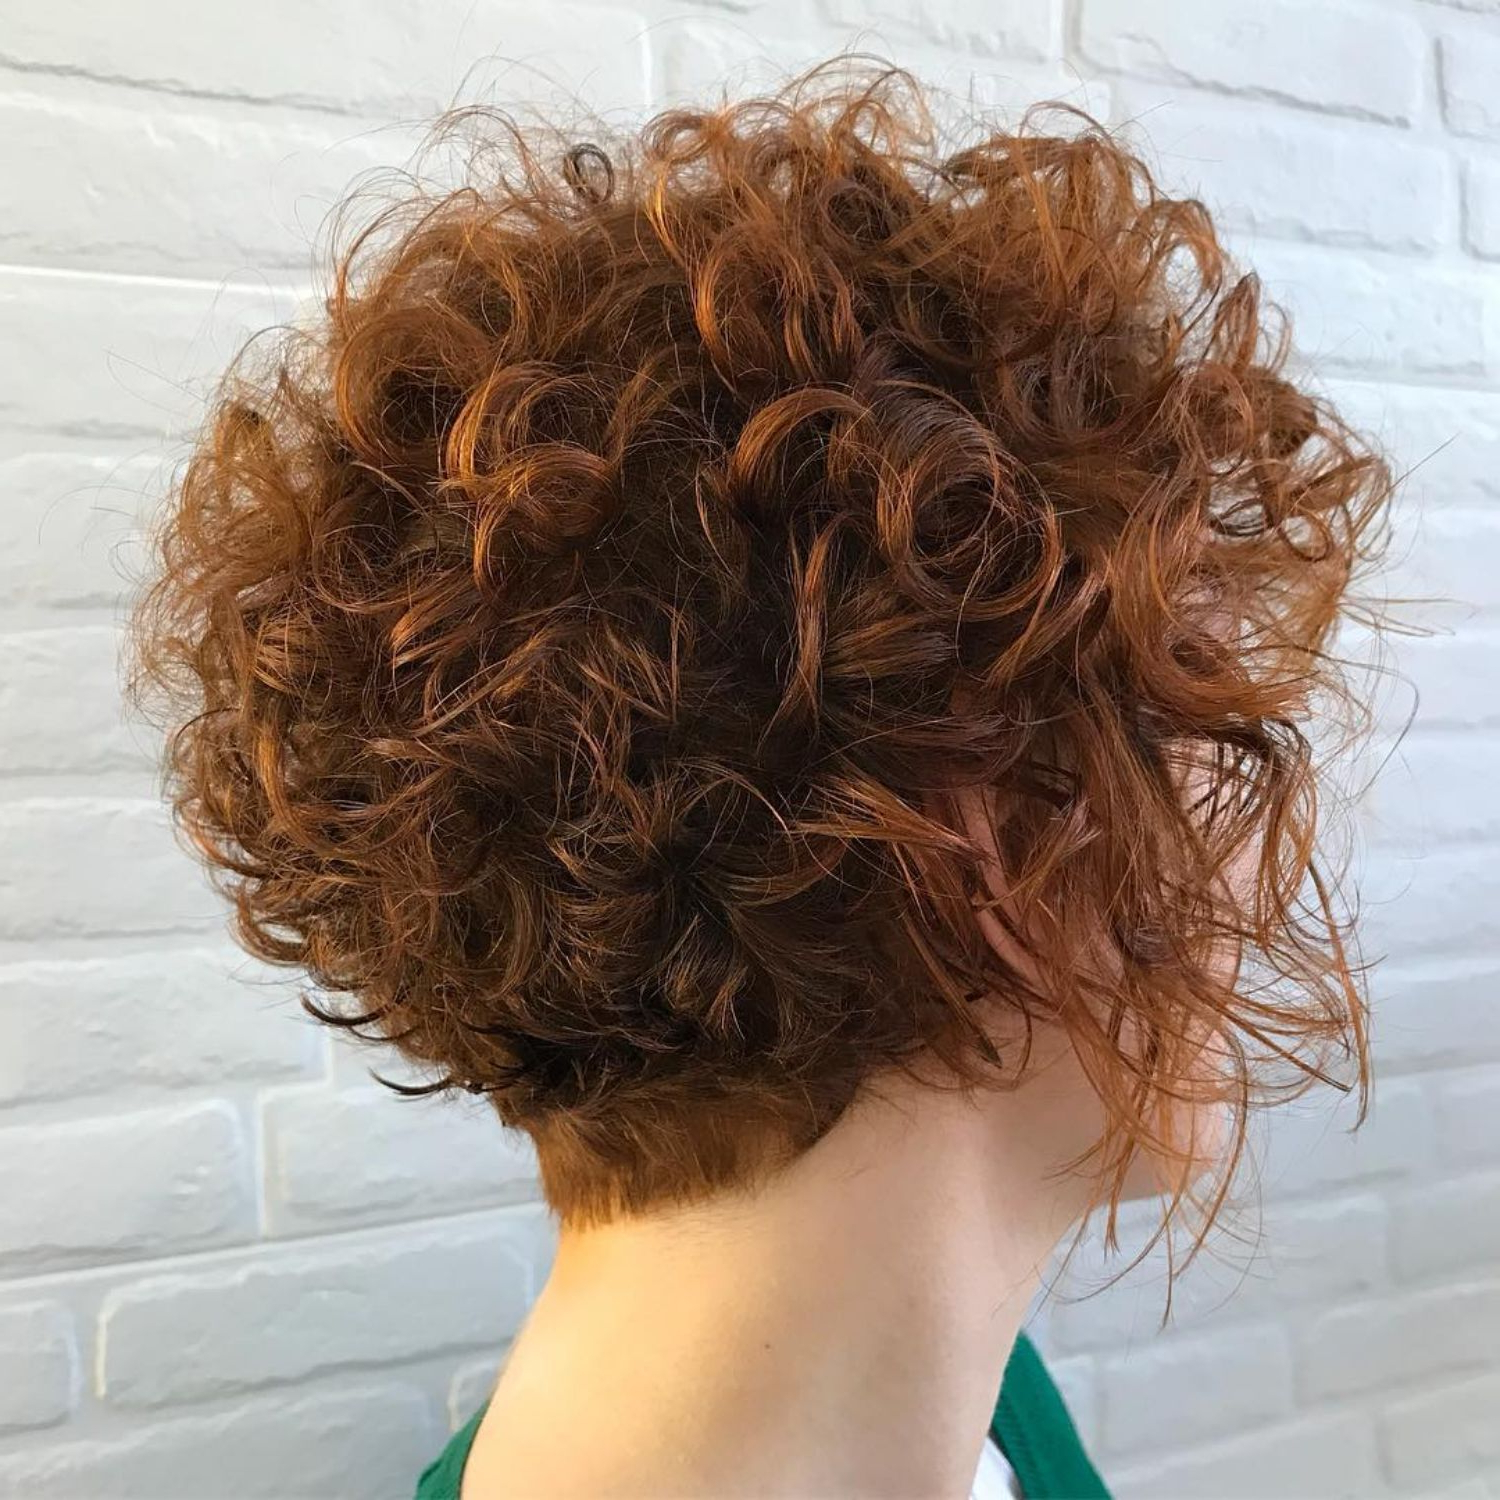 60 Most Delightful Short Wavy Hairstyles In 2018 | Hair Ideas With Tapered Brown Pixie Hairstyles With Ginger Curls (View 4 of 25)